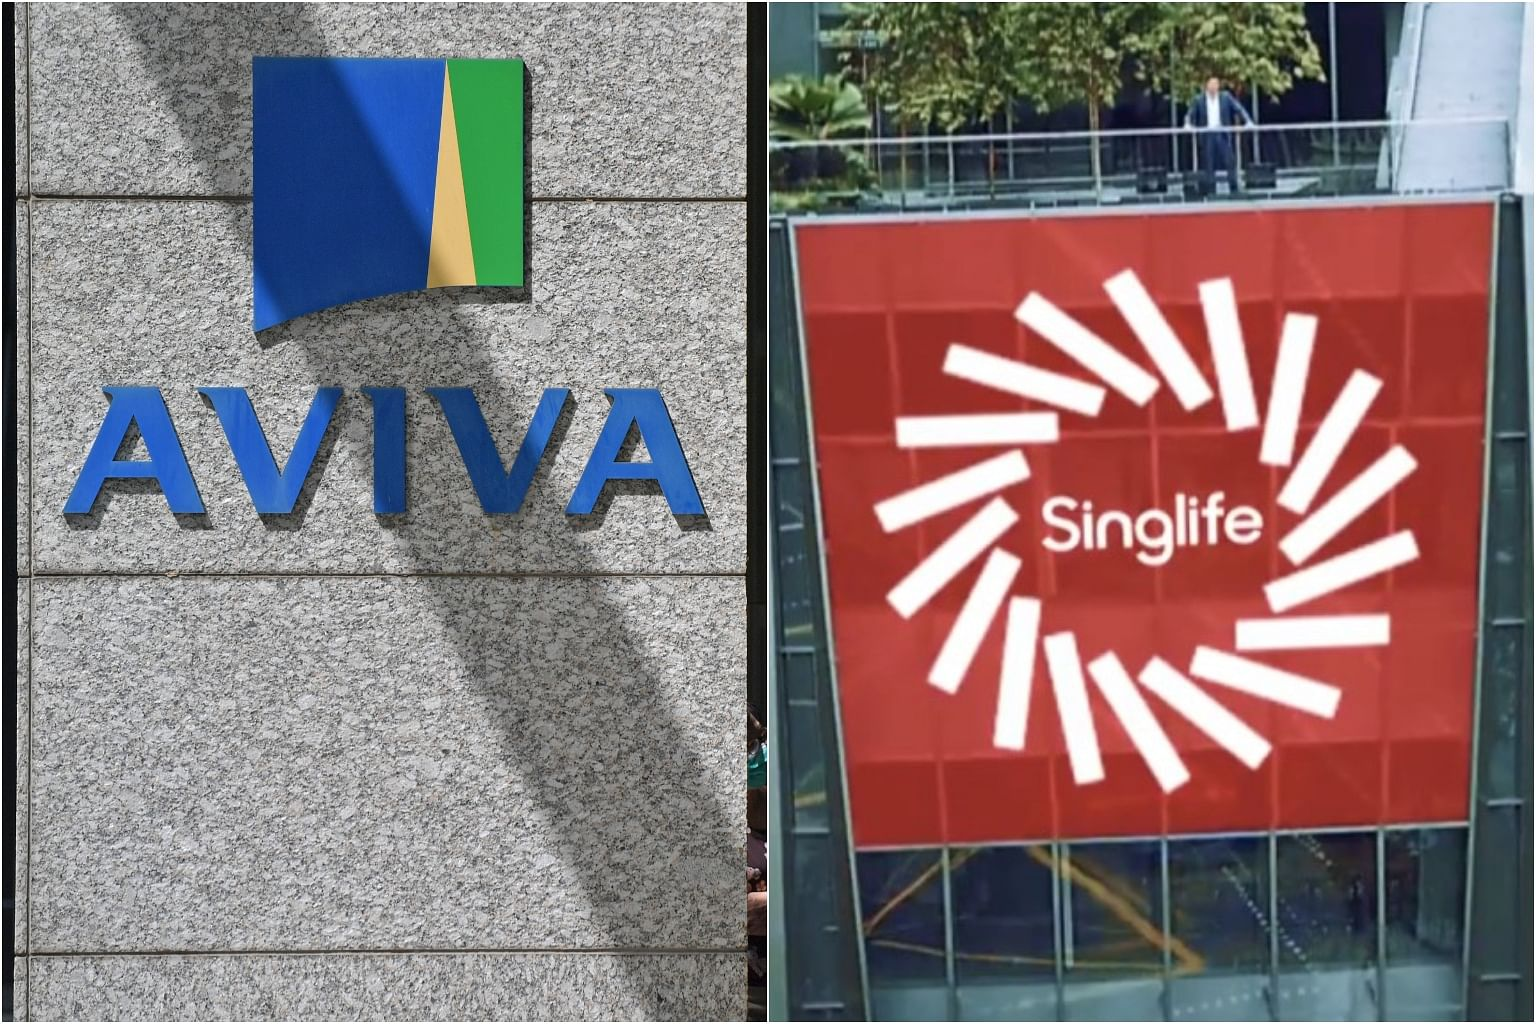 Singlife Aviva Singapore To Merge In 3 2b Deal Business News Top Stories The Straits Times